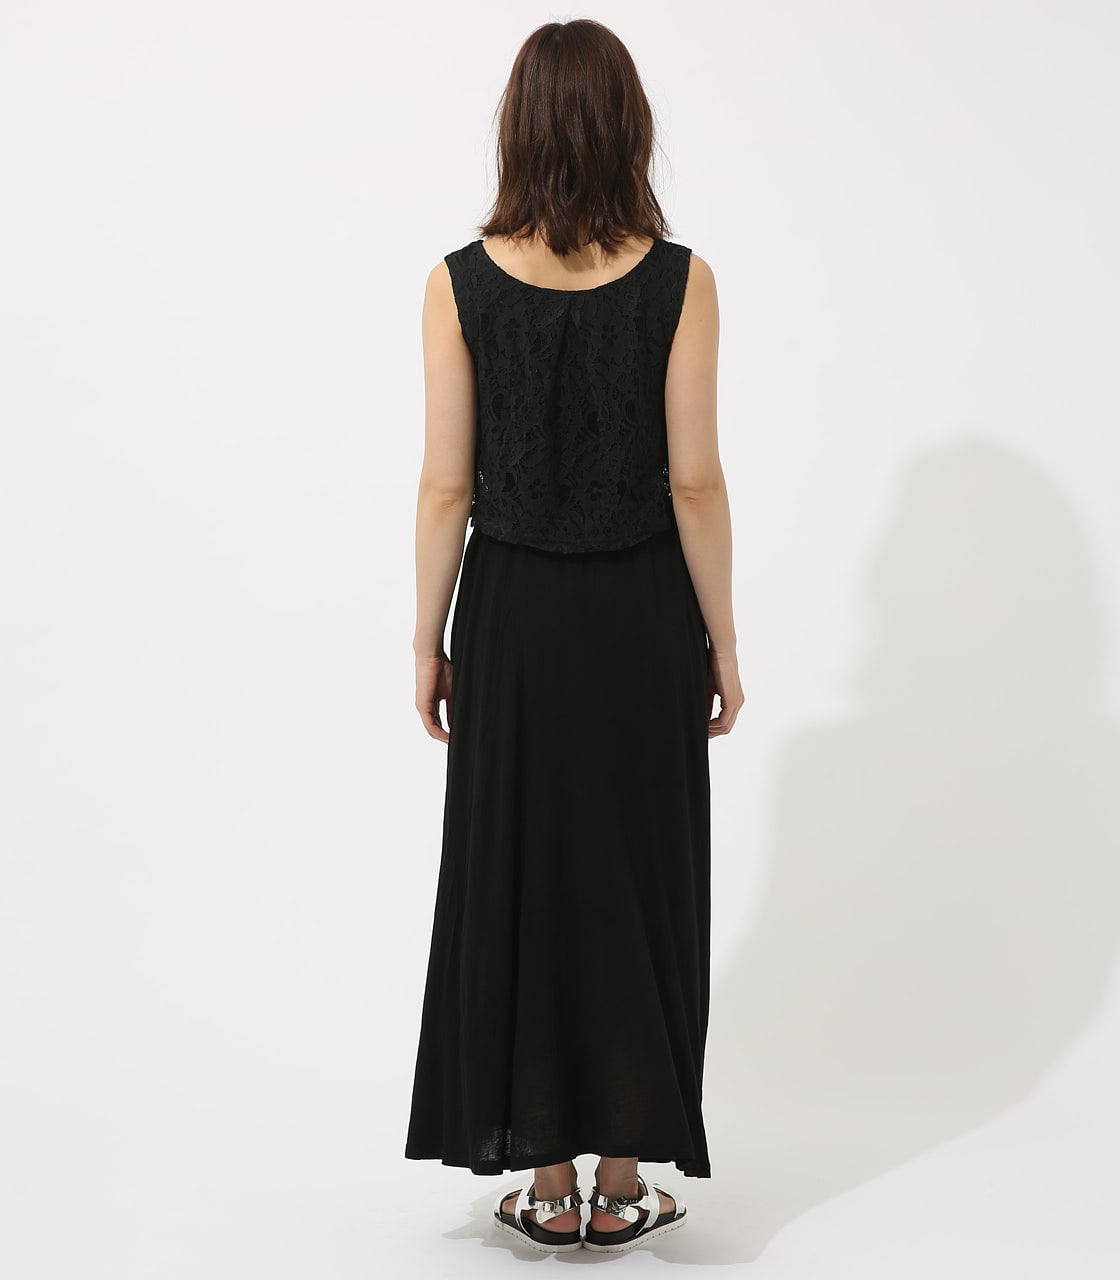 【AZUL BY MOUSSY】レースドッキングワンピース 詳細画像 BLK 7